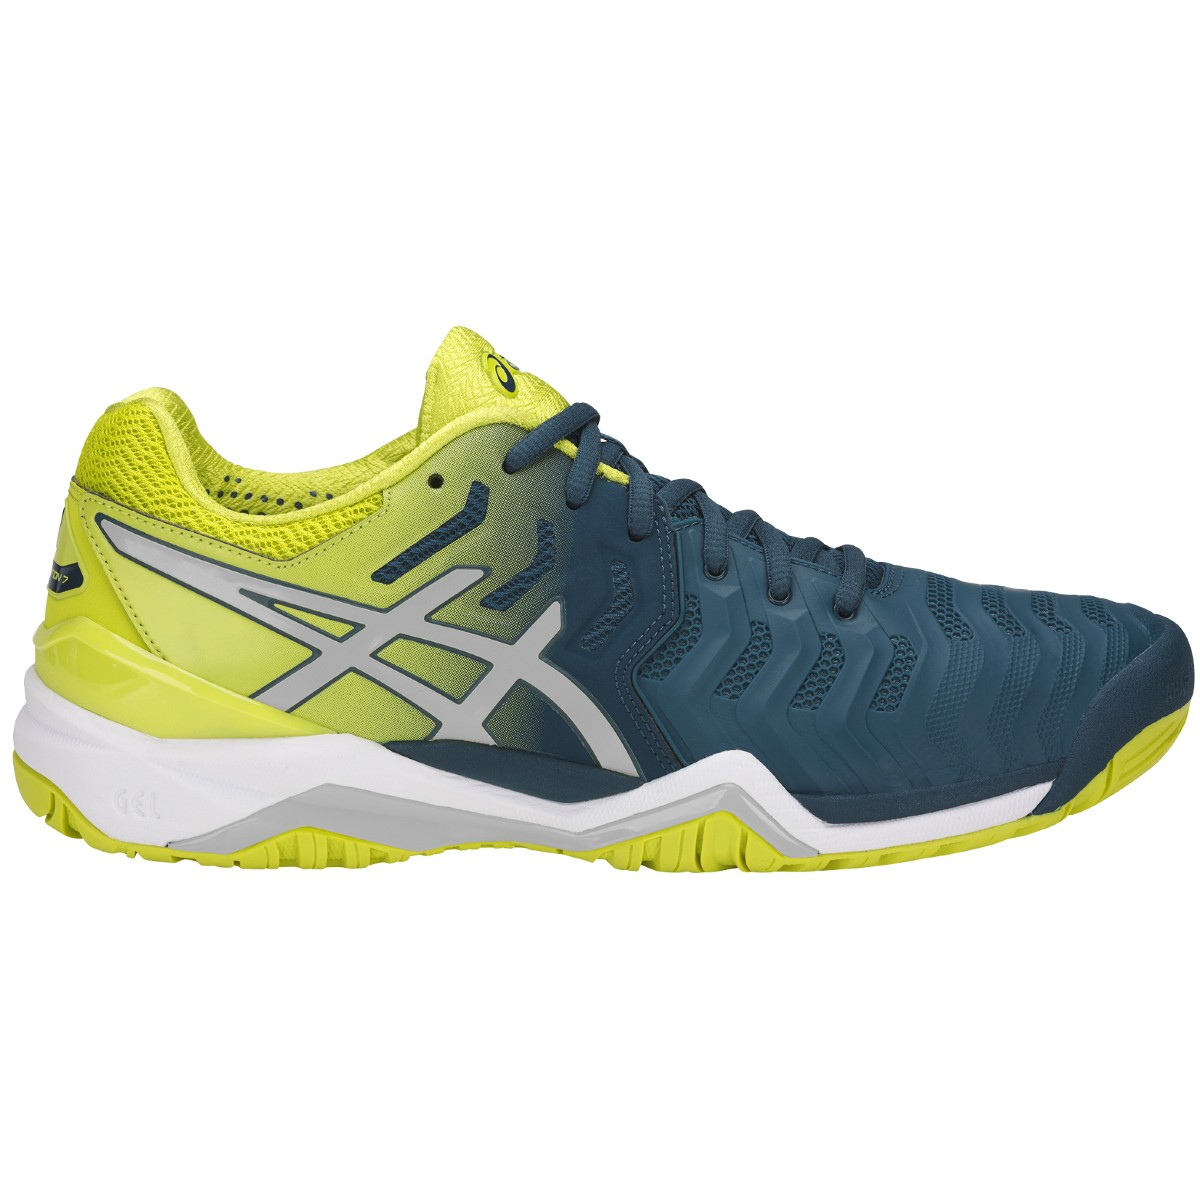 CHAUSSURES ASICS GEL RESOLUTION 7 TOUTES SURFACES ASICS